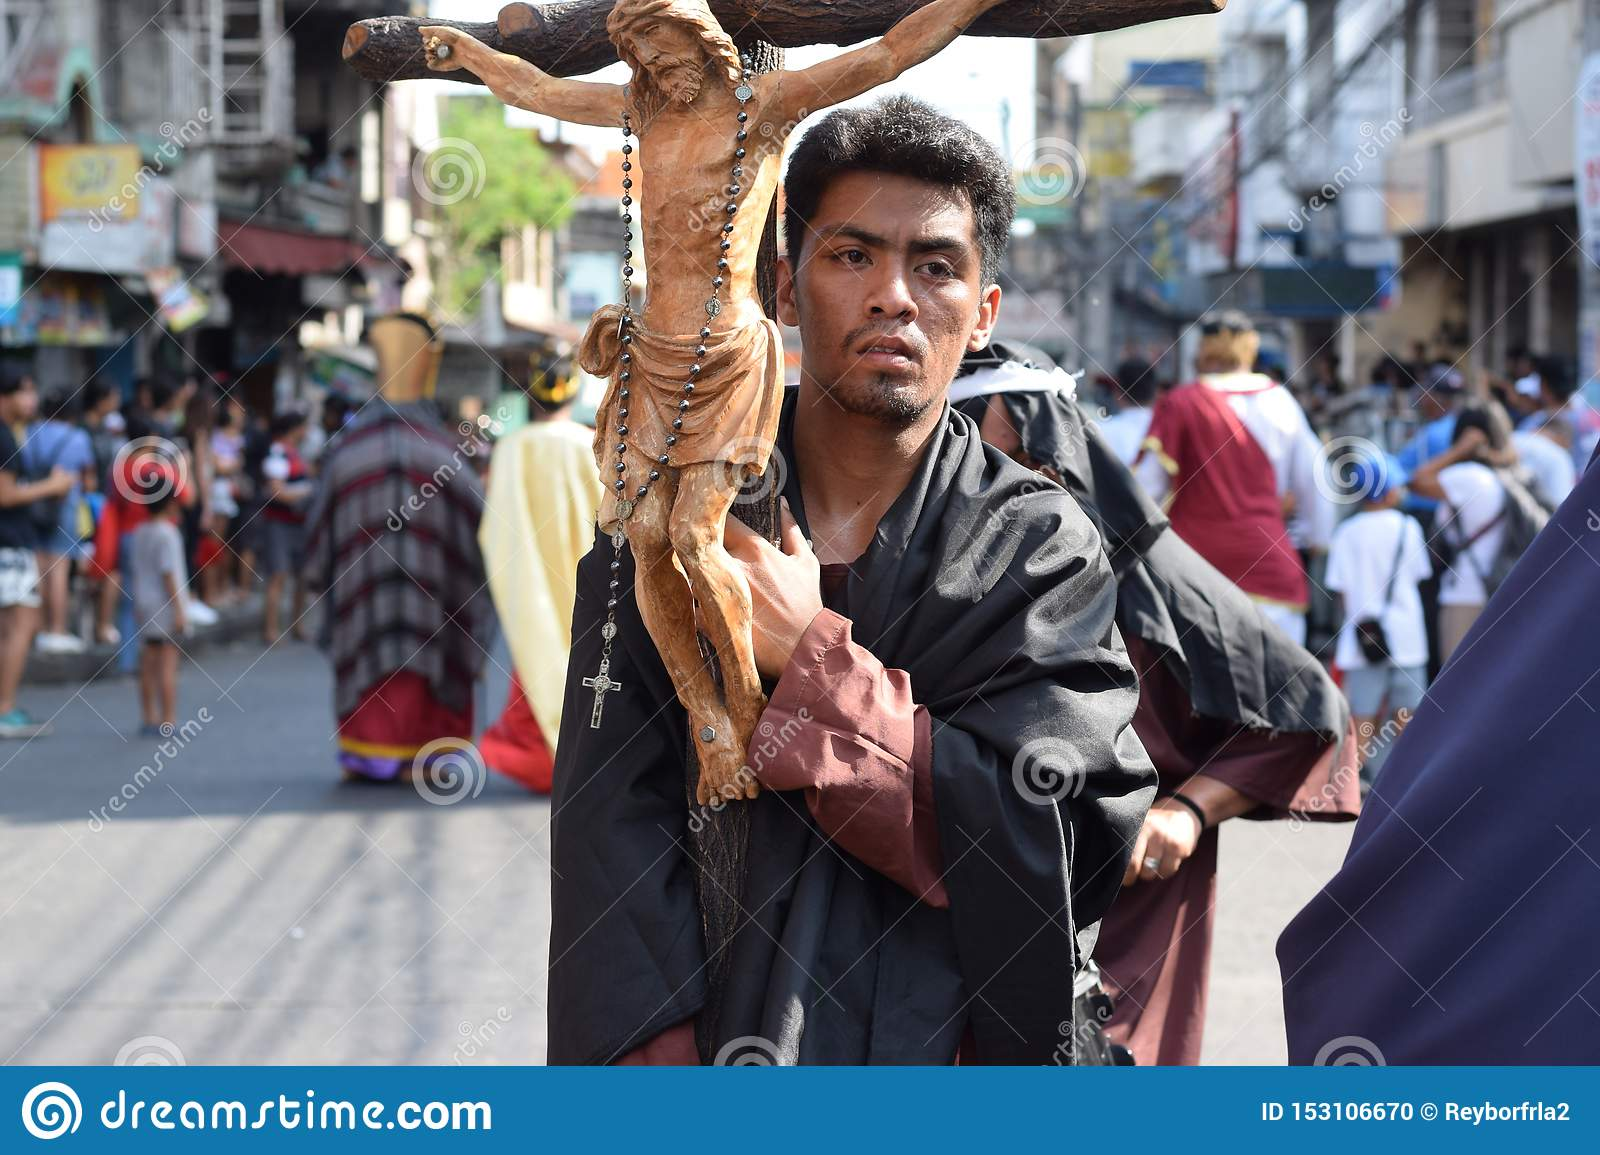 Huge crucifix carried by holy man, street drama, community celebrates Good Friday representing the events that led to the Crucifix